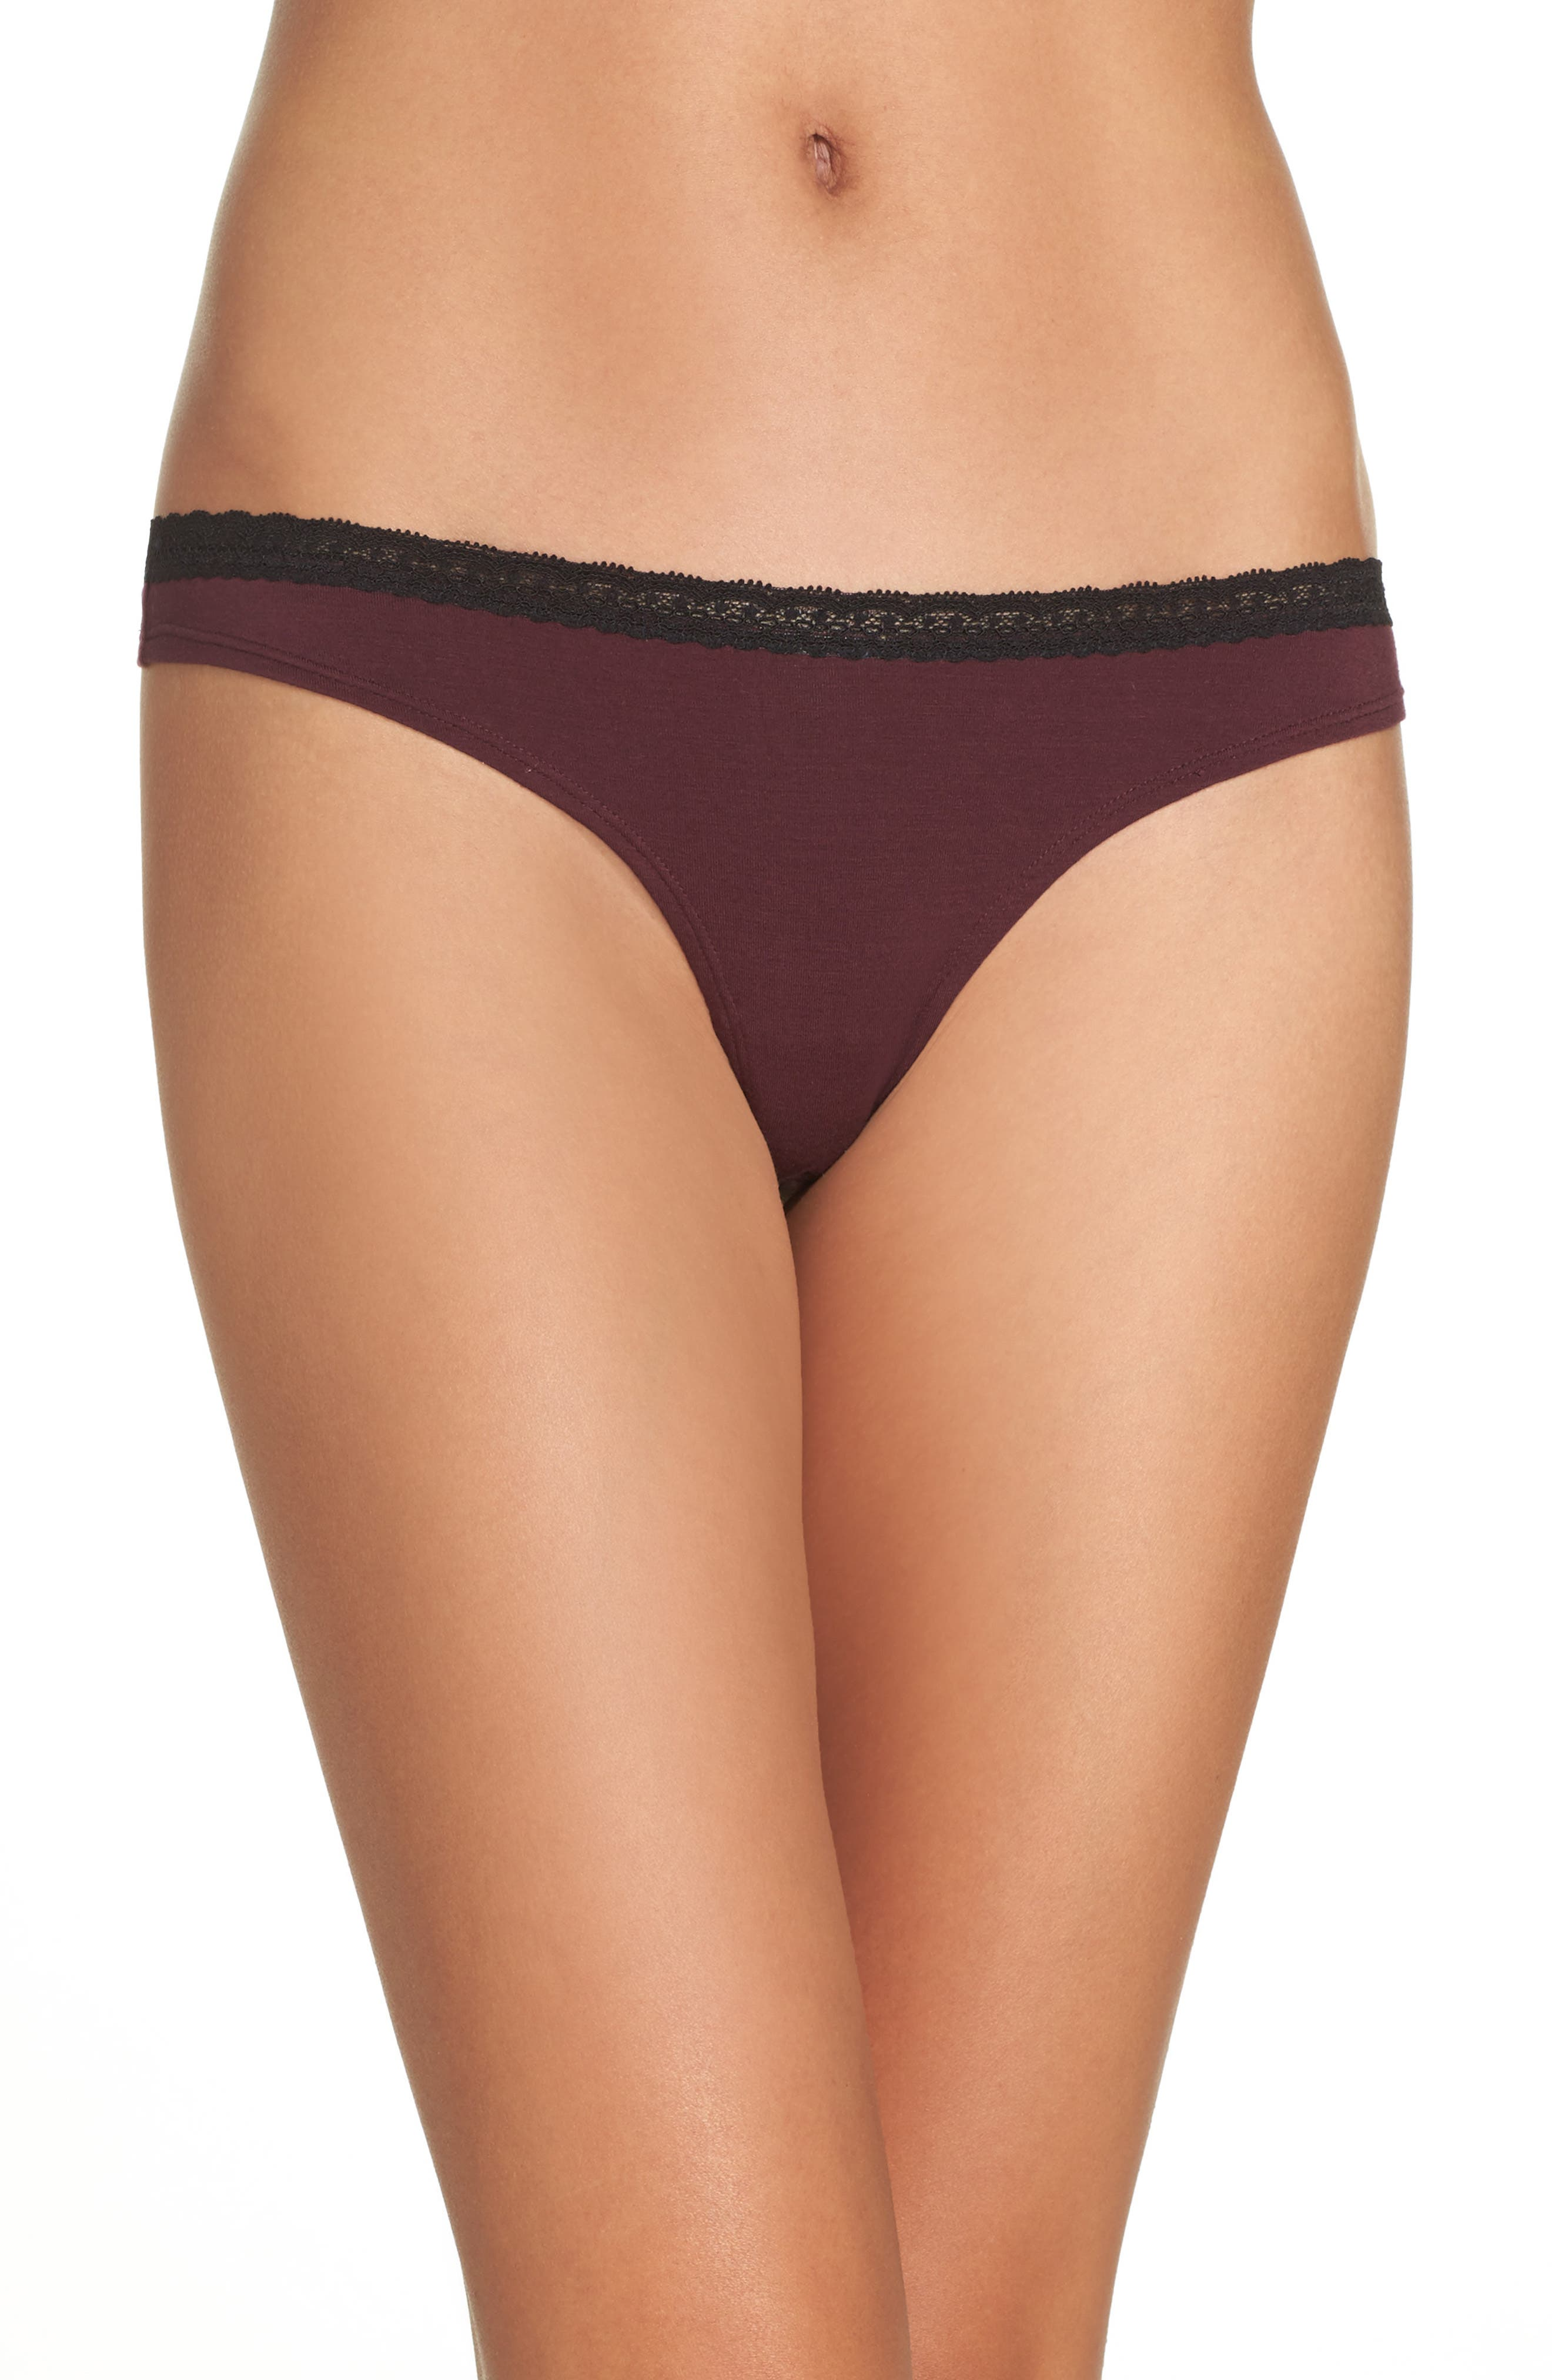 Chelsea28 Dreamy Thong (4 for $30)